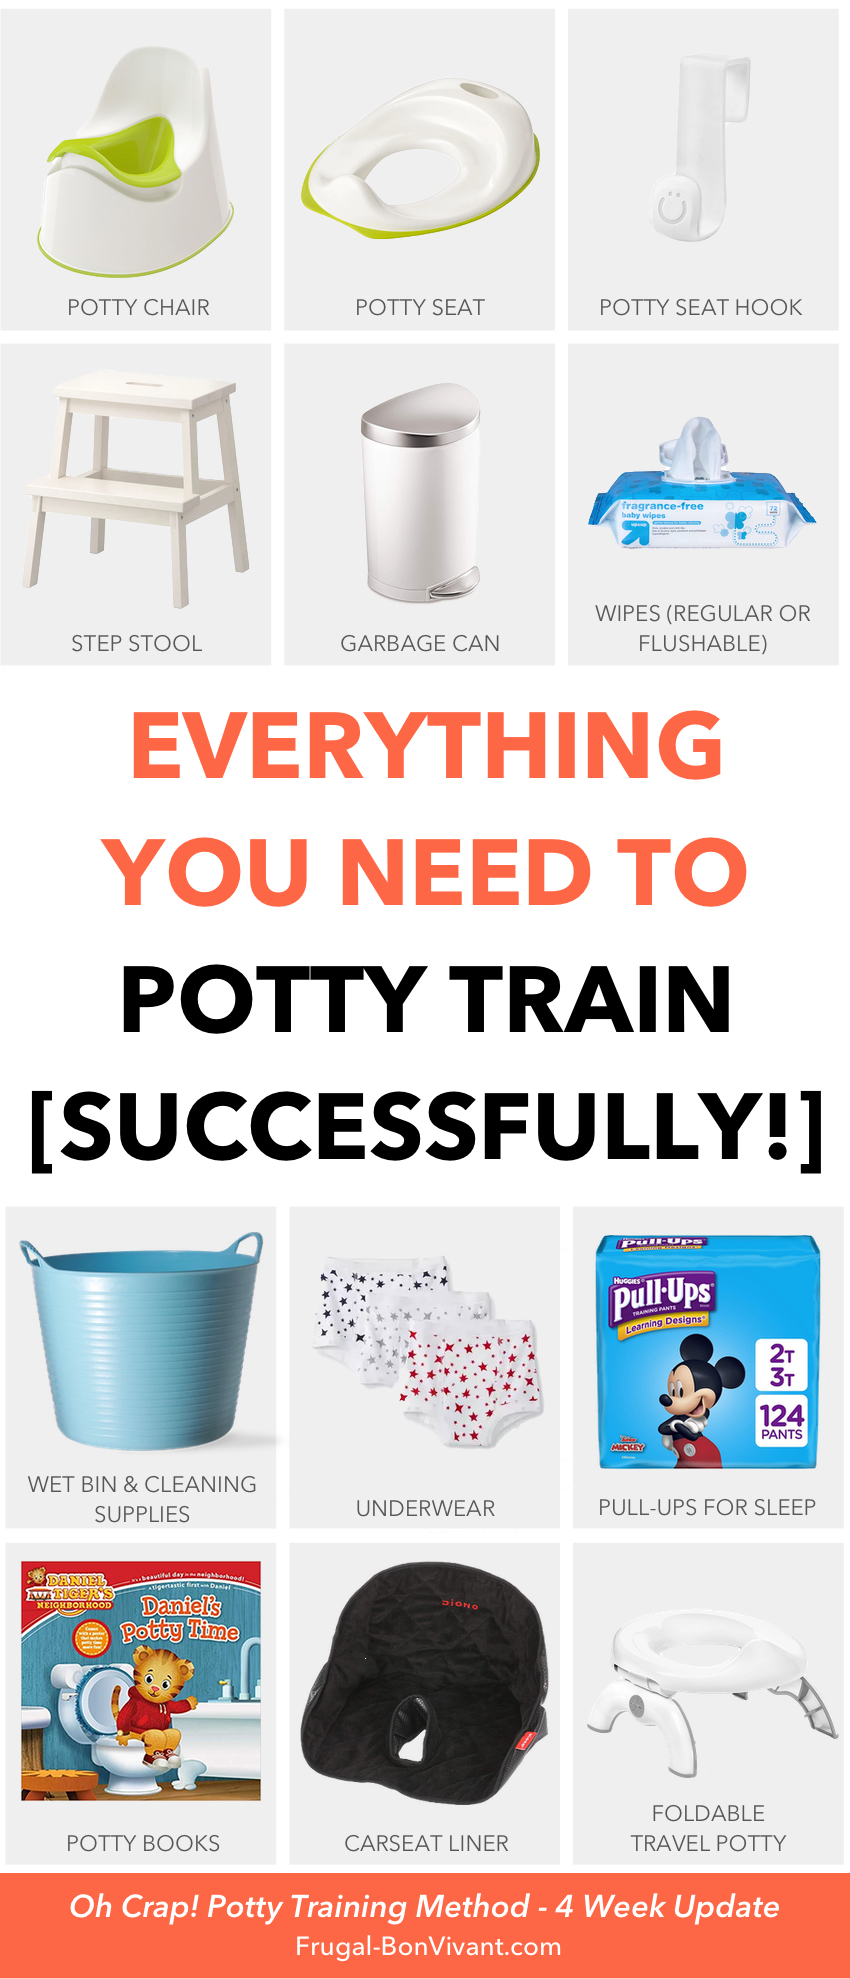 Potty Training Essentials - supplies for the Oh Crap potty training method